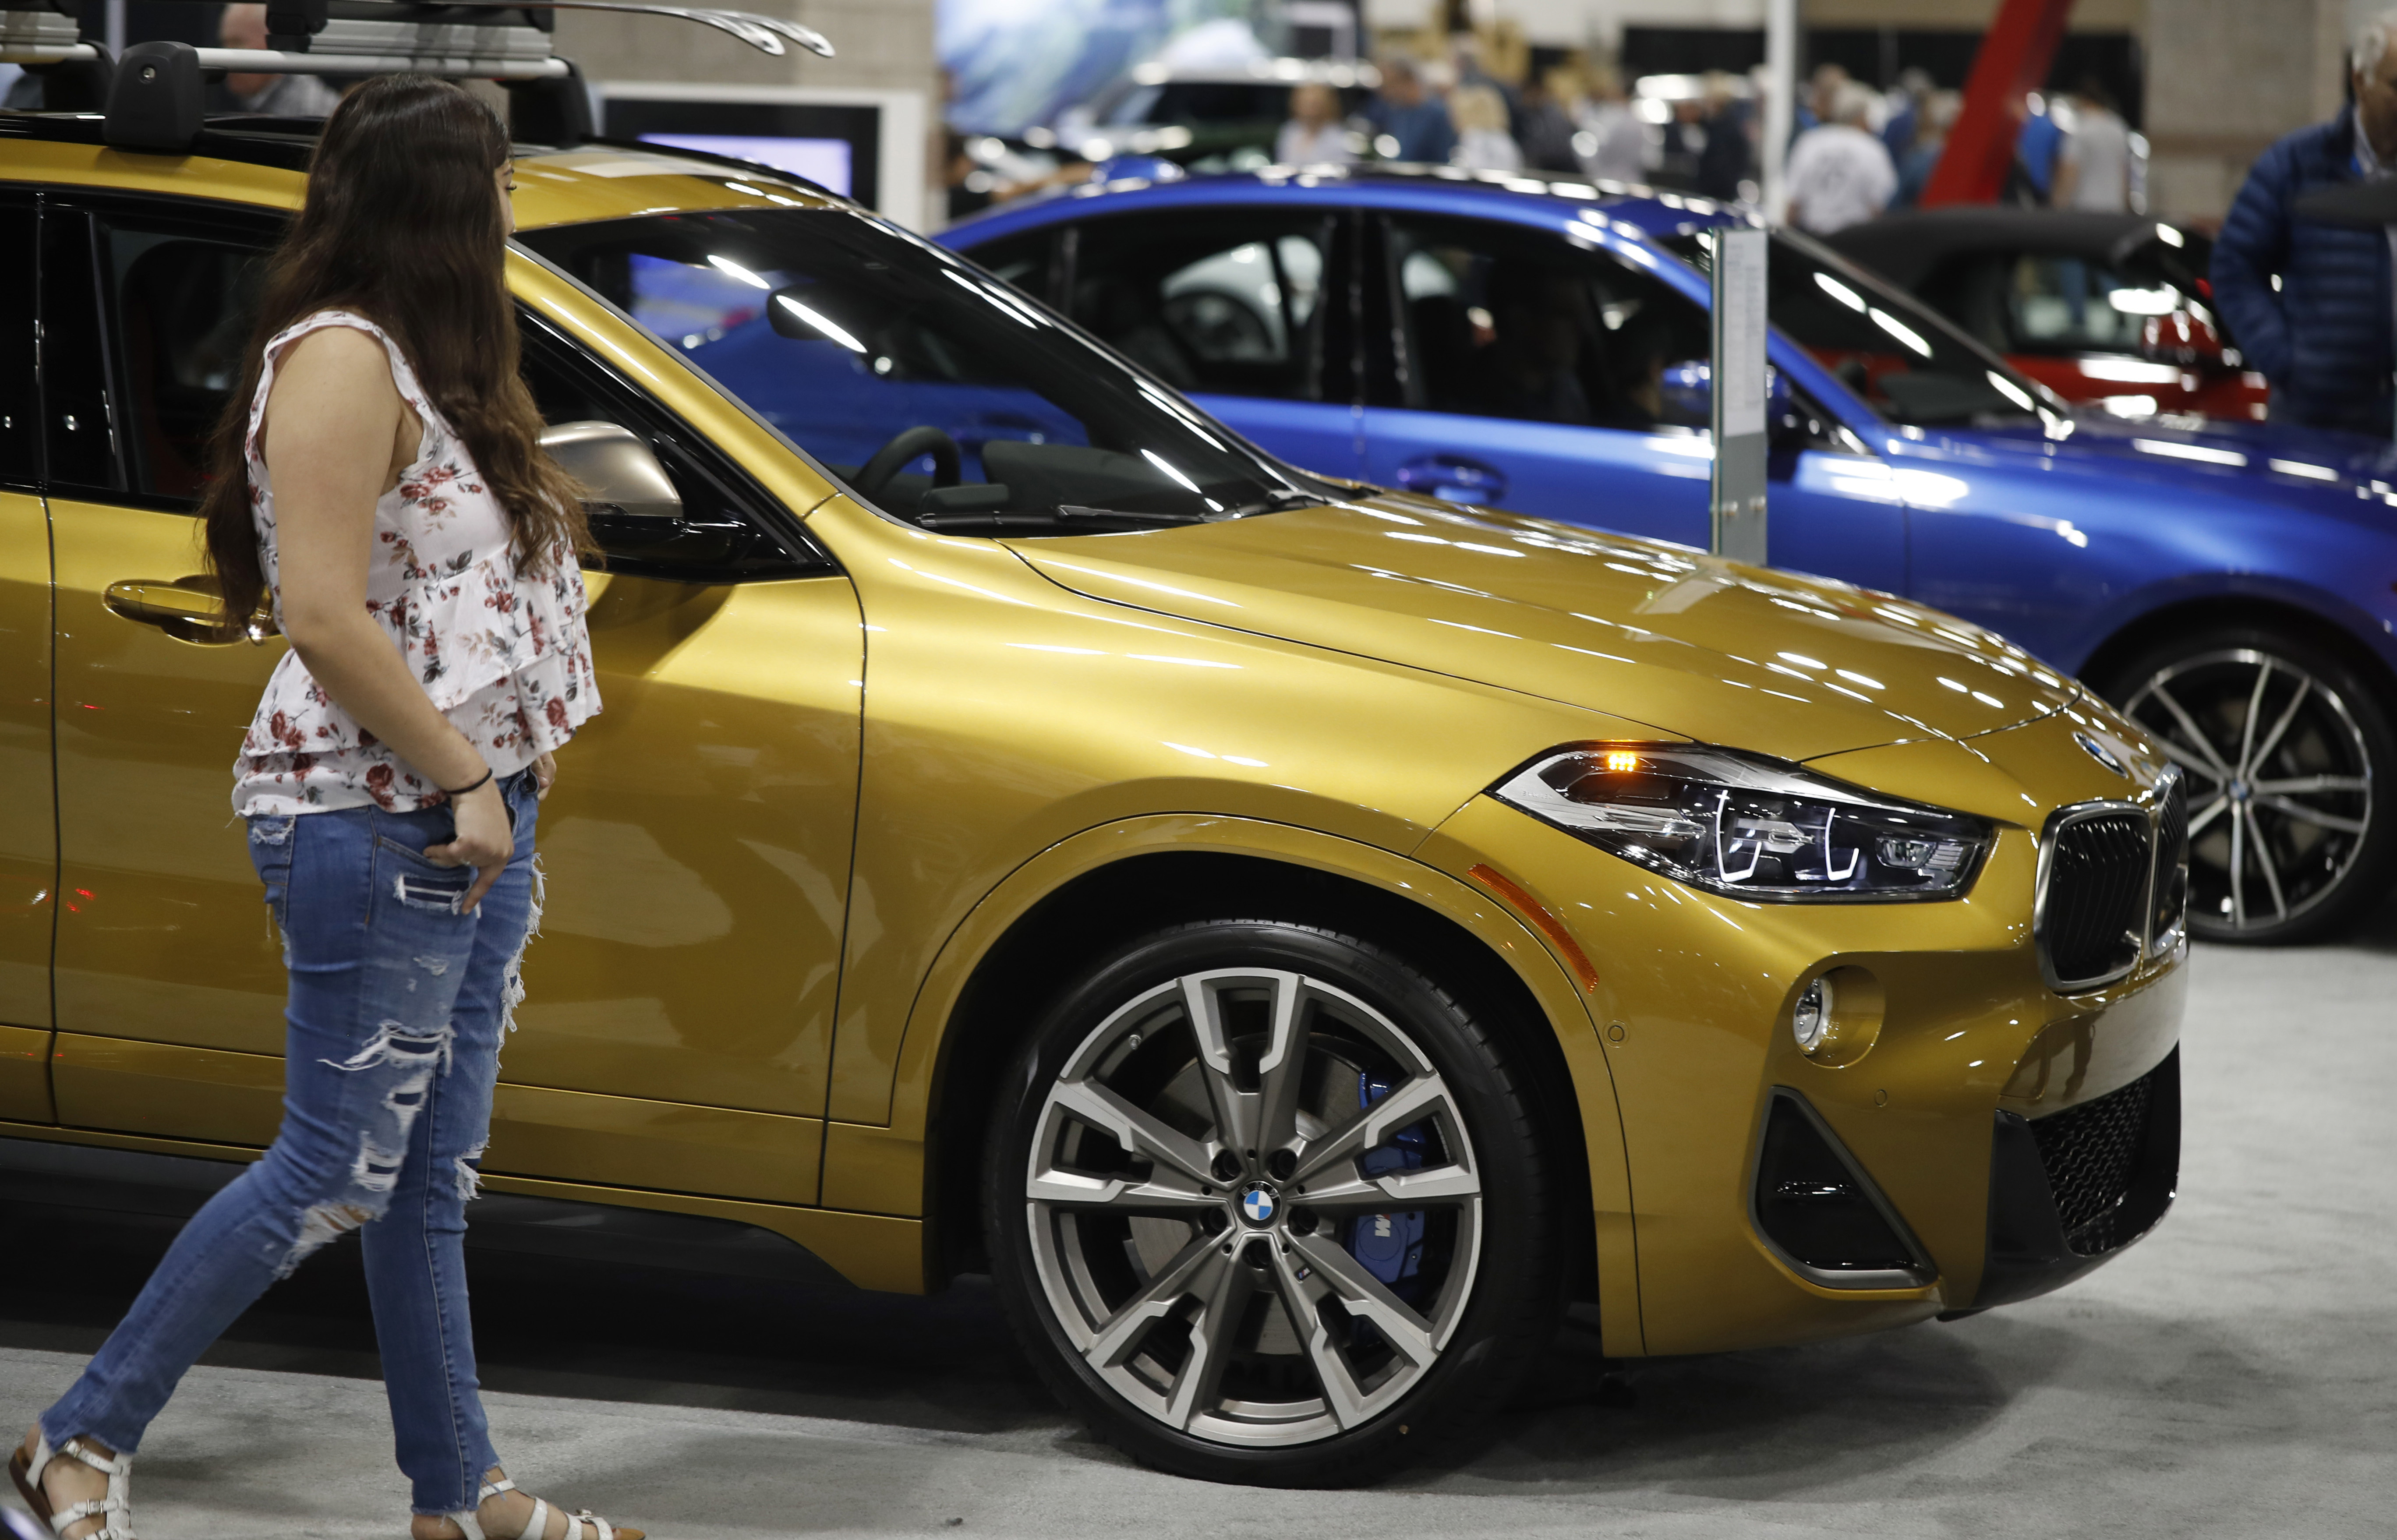 Used luxury or fully-loaded new car? Edmunds weighs both